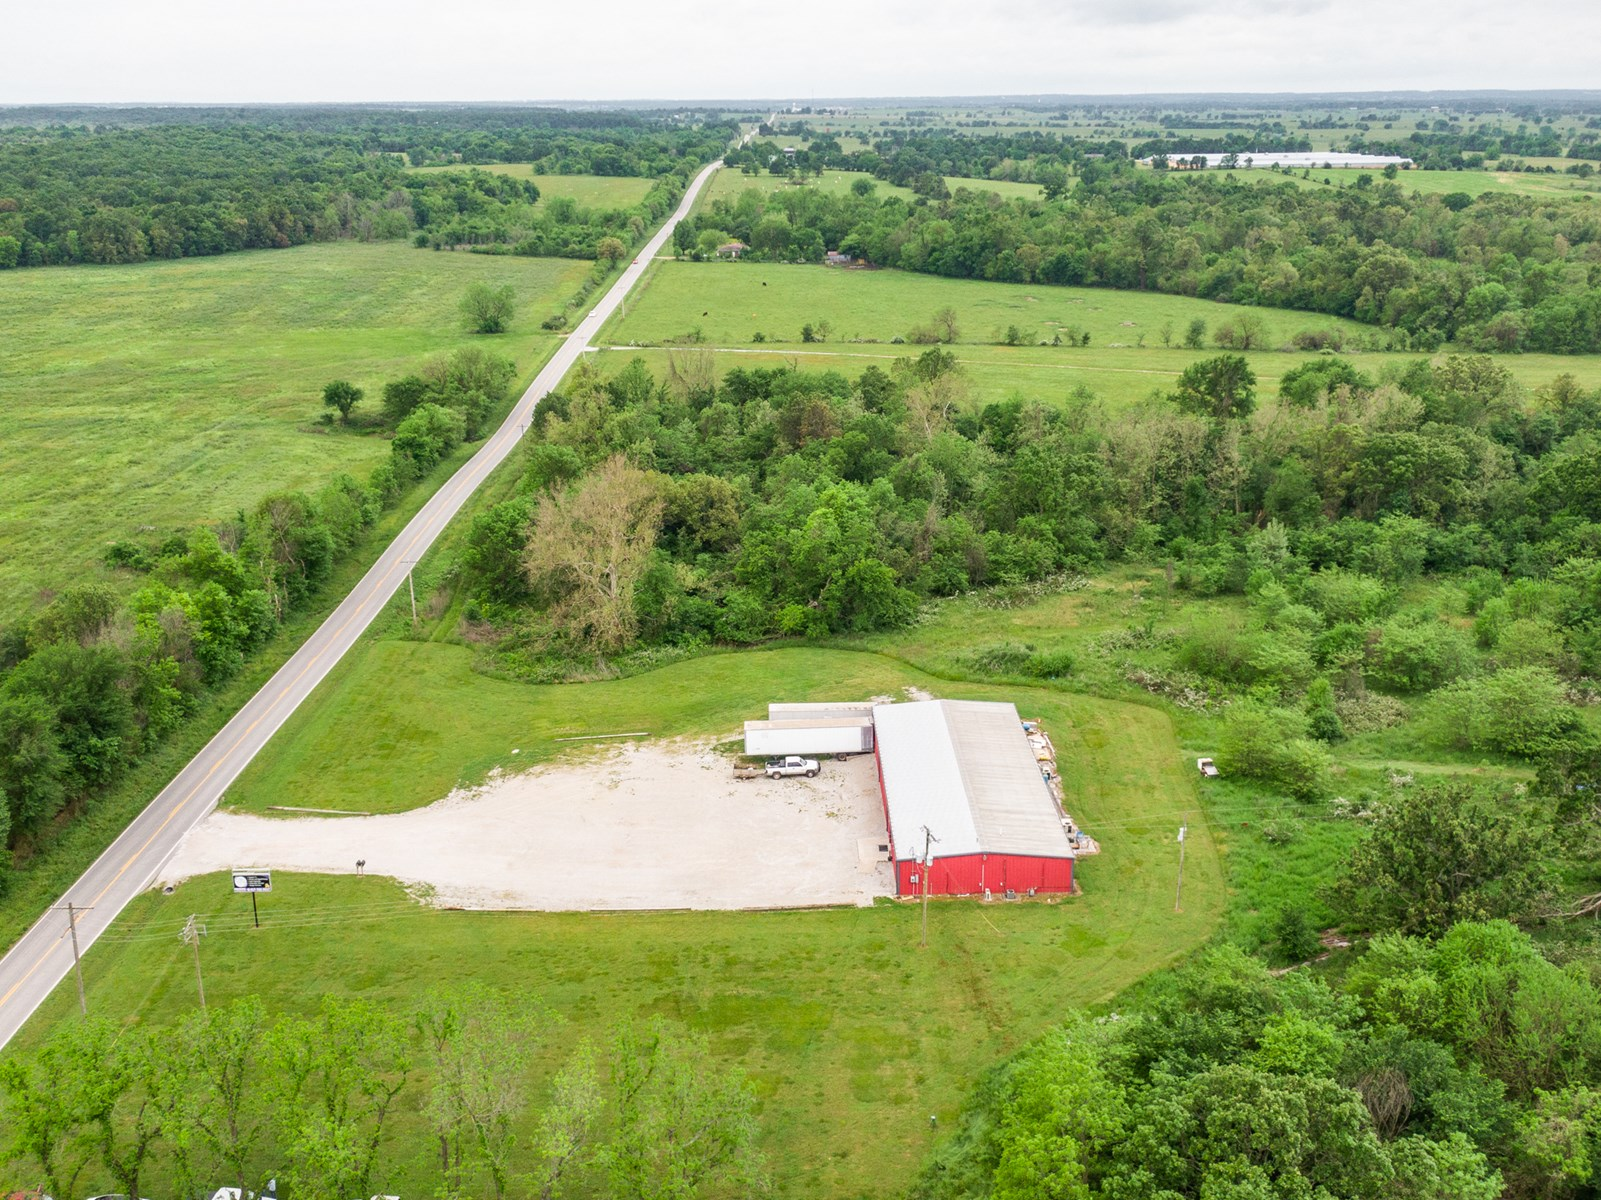 Commercial Property for Sale in McDonald County